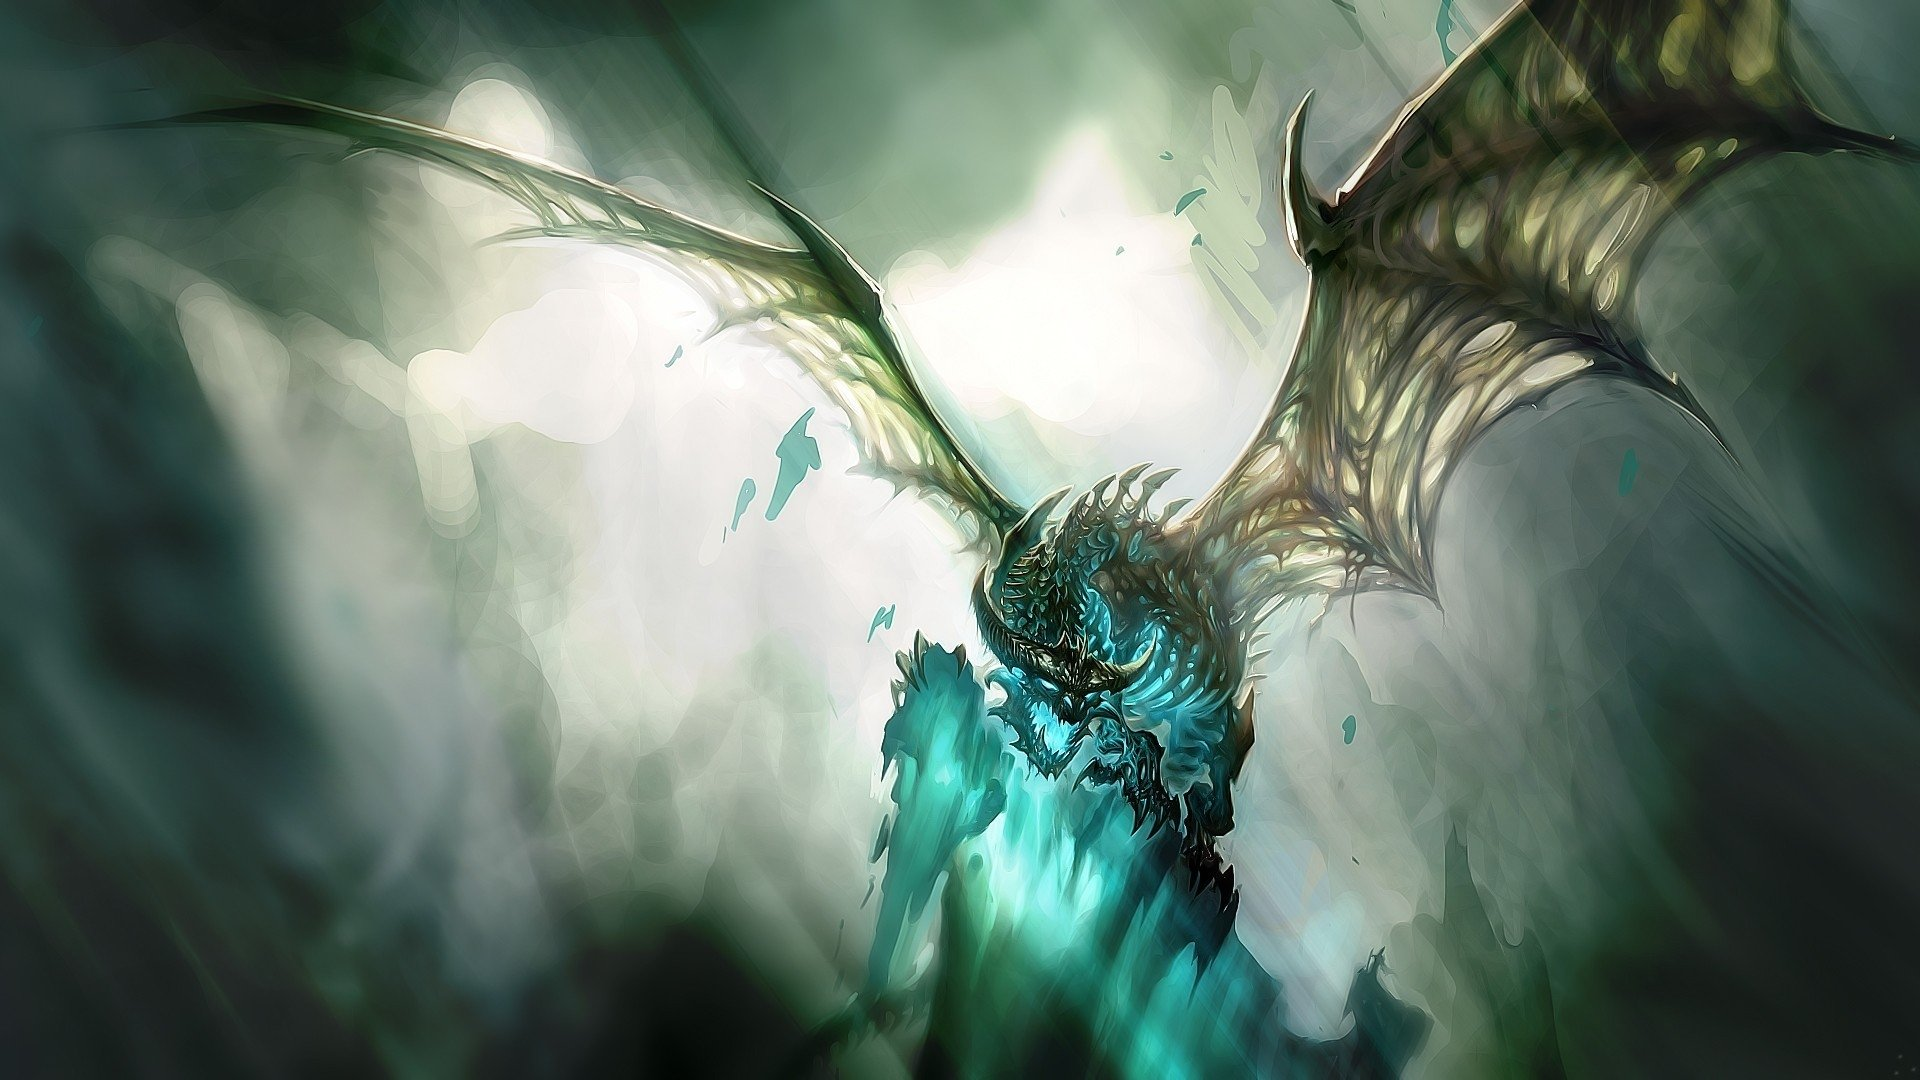 Video Game - World Of Warcraft  Dragon Fantasy Wallpaper